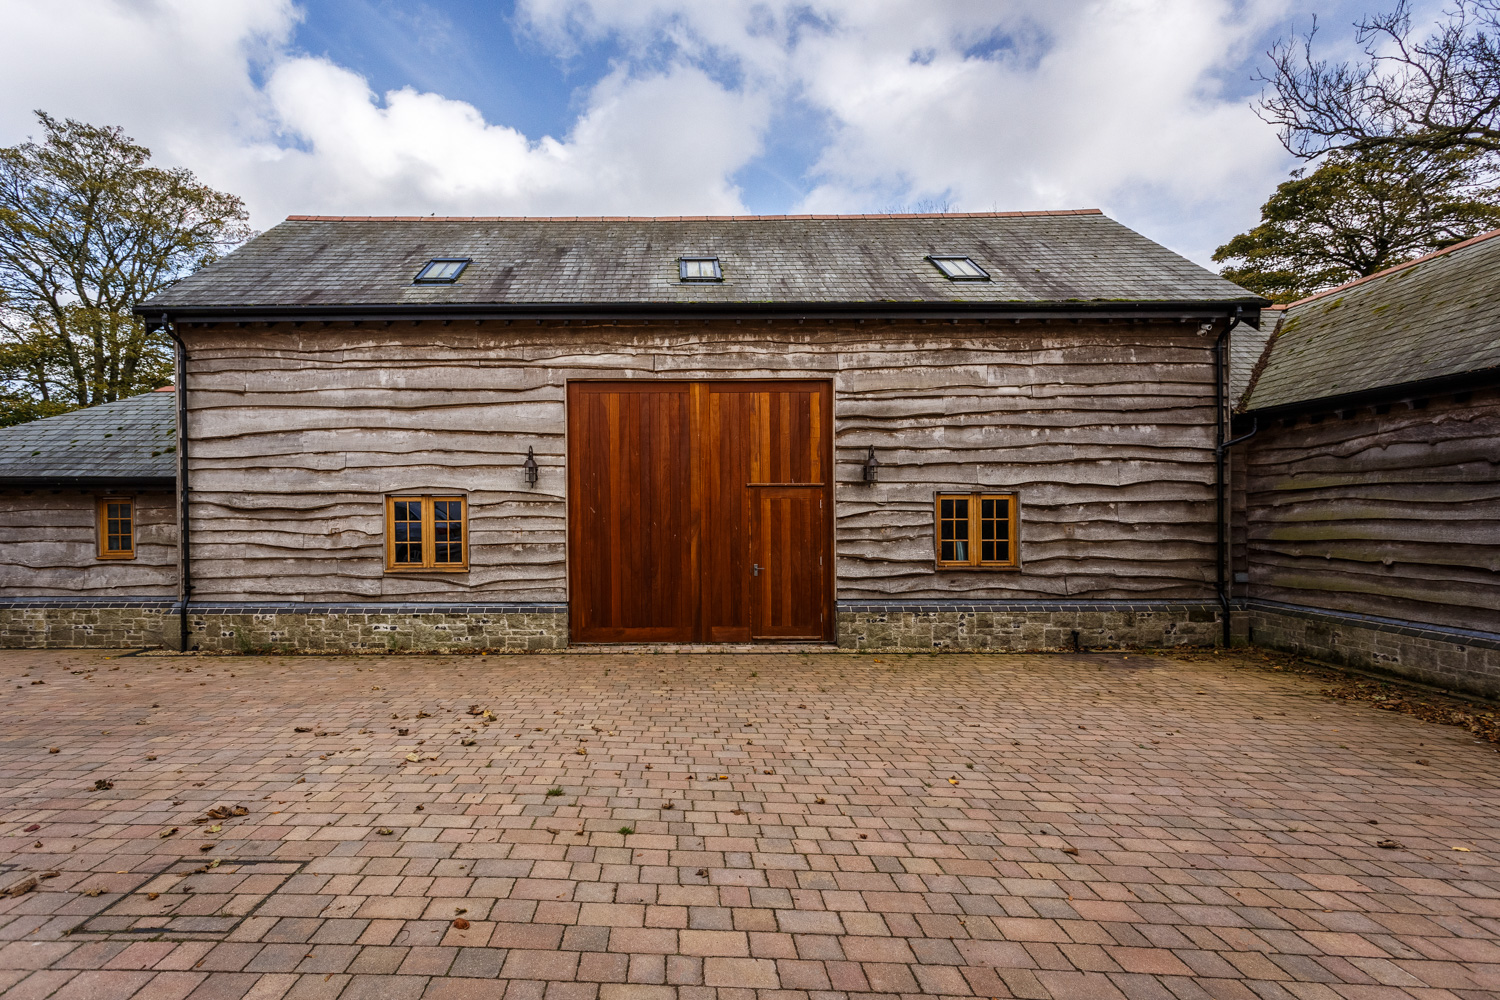 Architectural photography in Dorset by Rick McEvoy